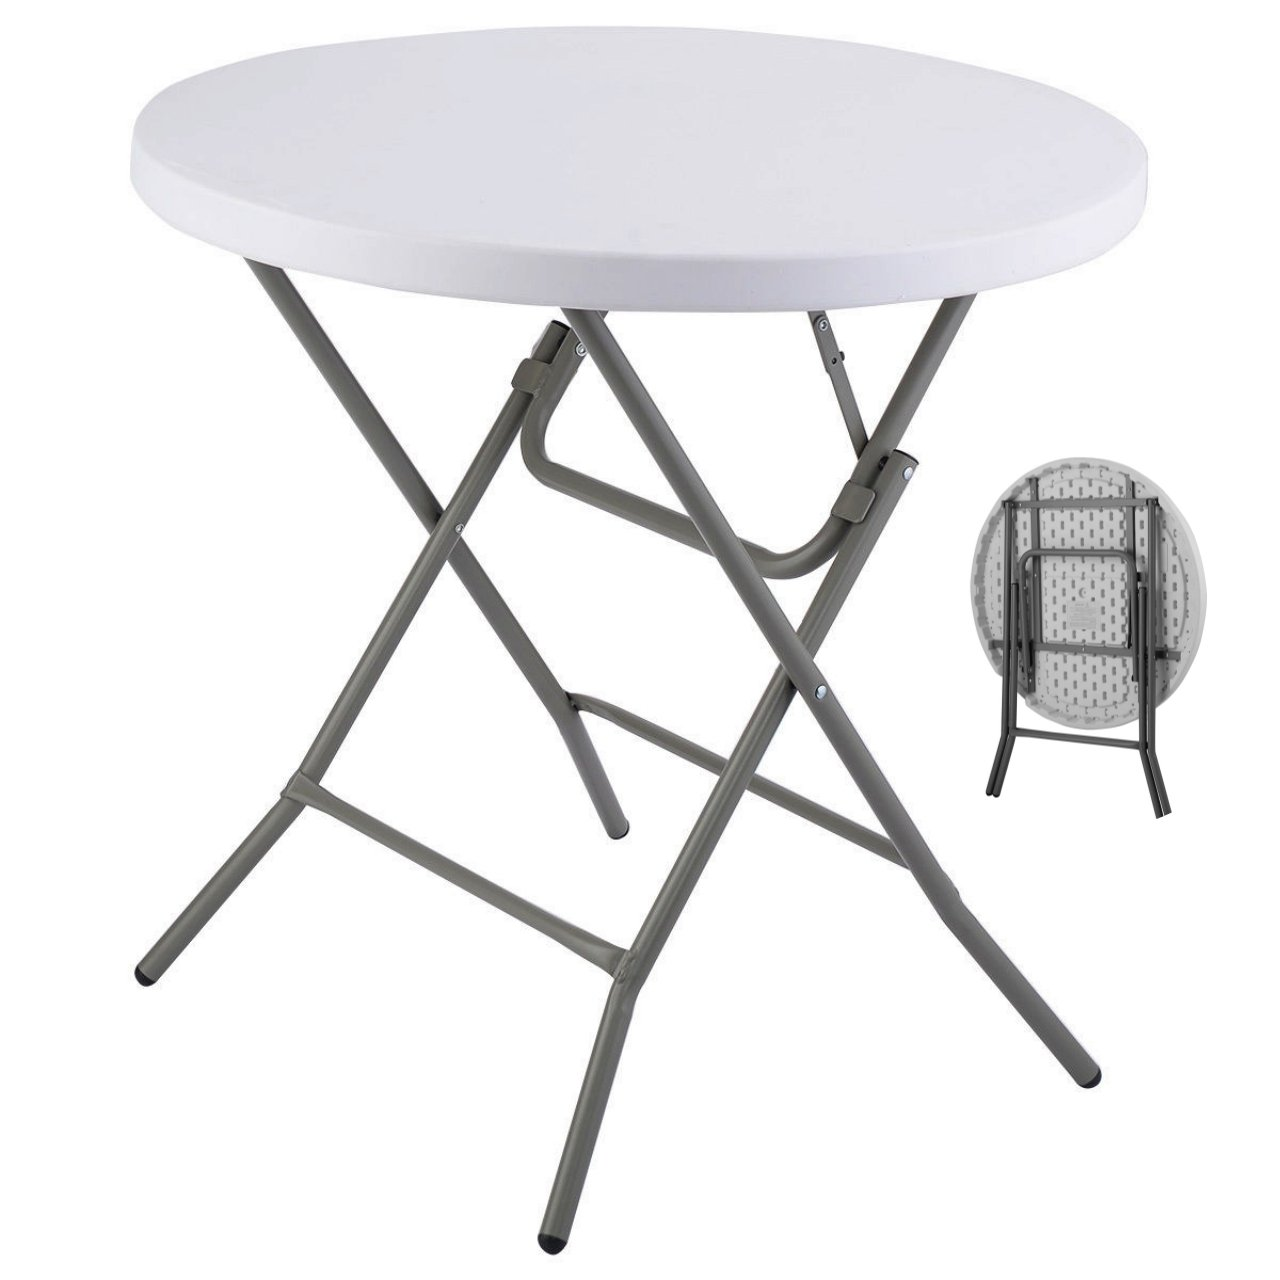 Commercial Construction Light-weight Portable Multipurpose 34'' Round Table High Density Plastic Powder Coated Steel Frame Folding Indoor-Outdoor Party Dining Laptop Desk #1181 by Koonlert@shop